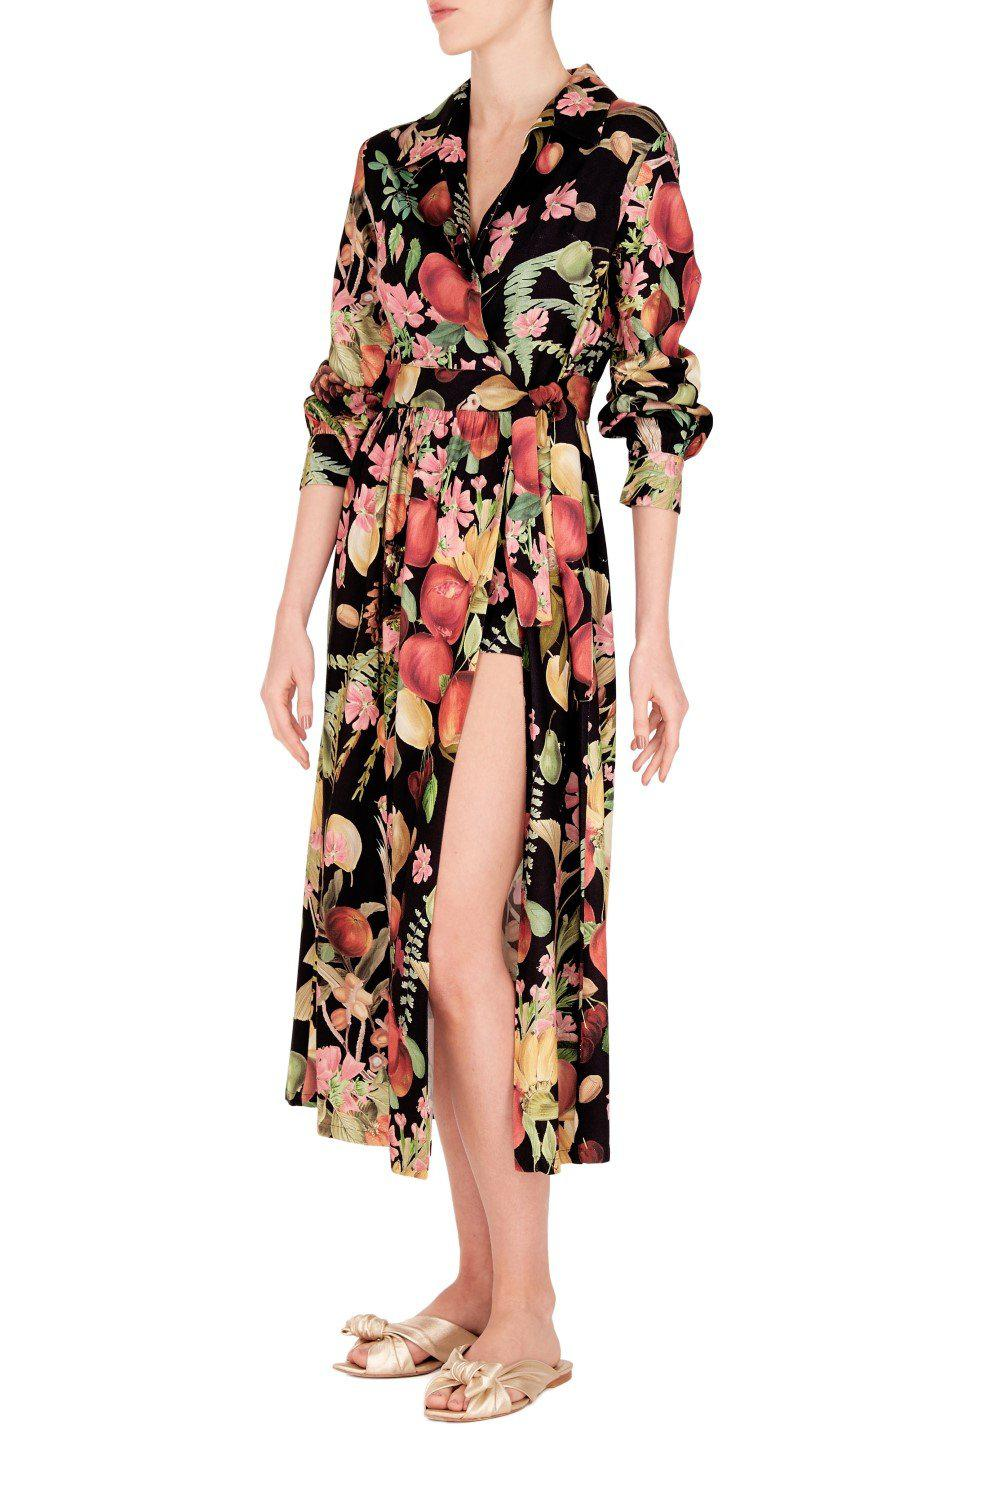 Fruits Exotiques Overlap Long Dress with Shorts